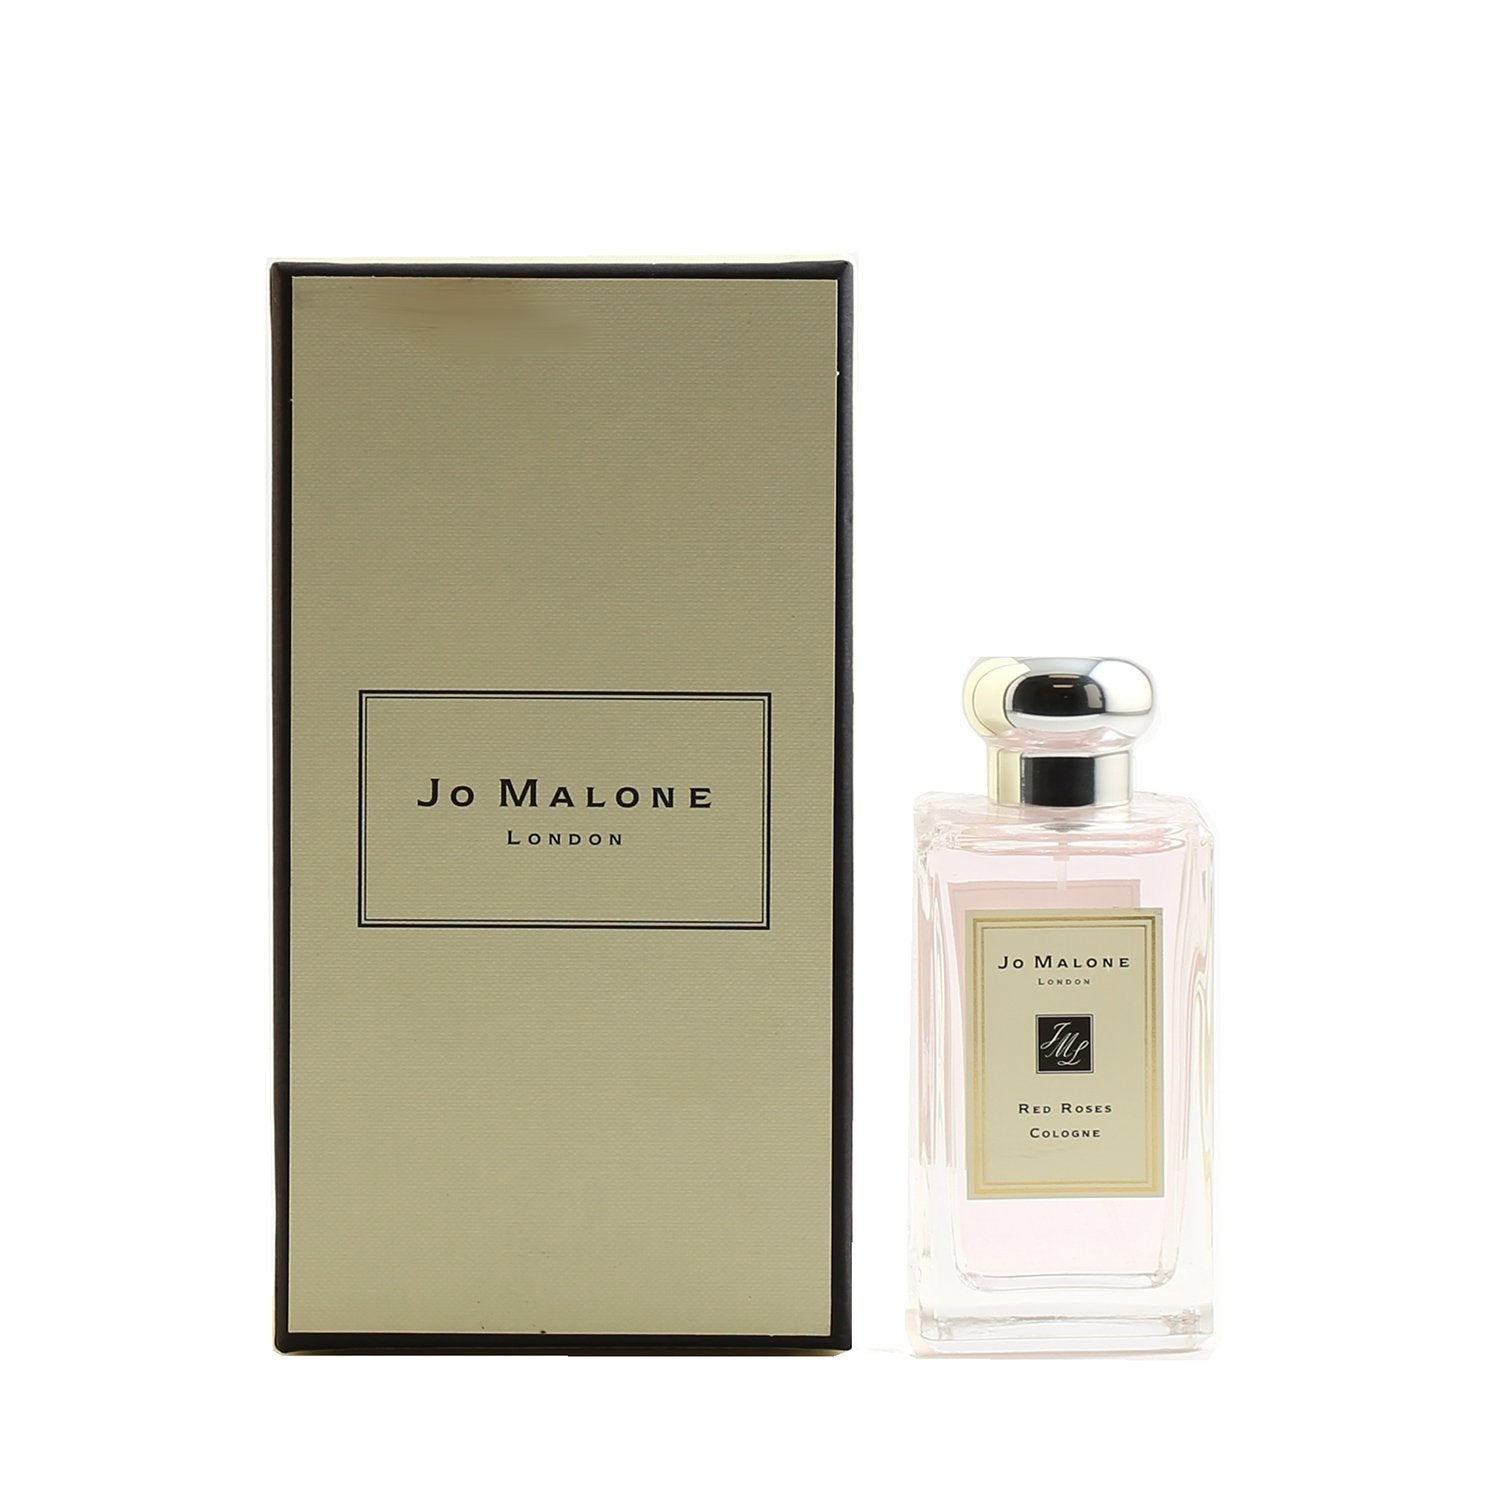 JO MALONE RED ROSES FOR WOMEN - COLOGNE